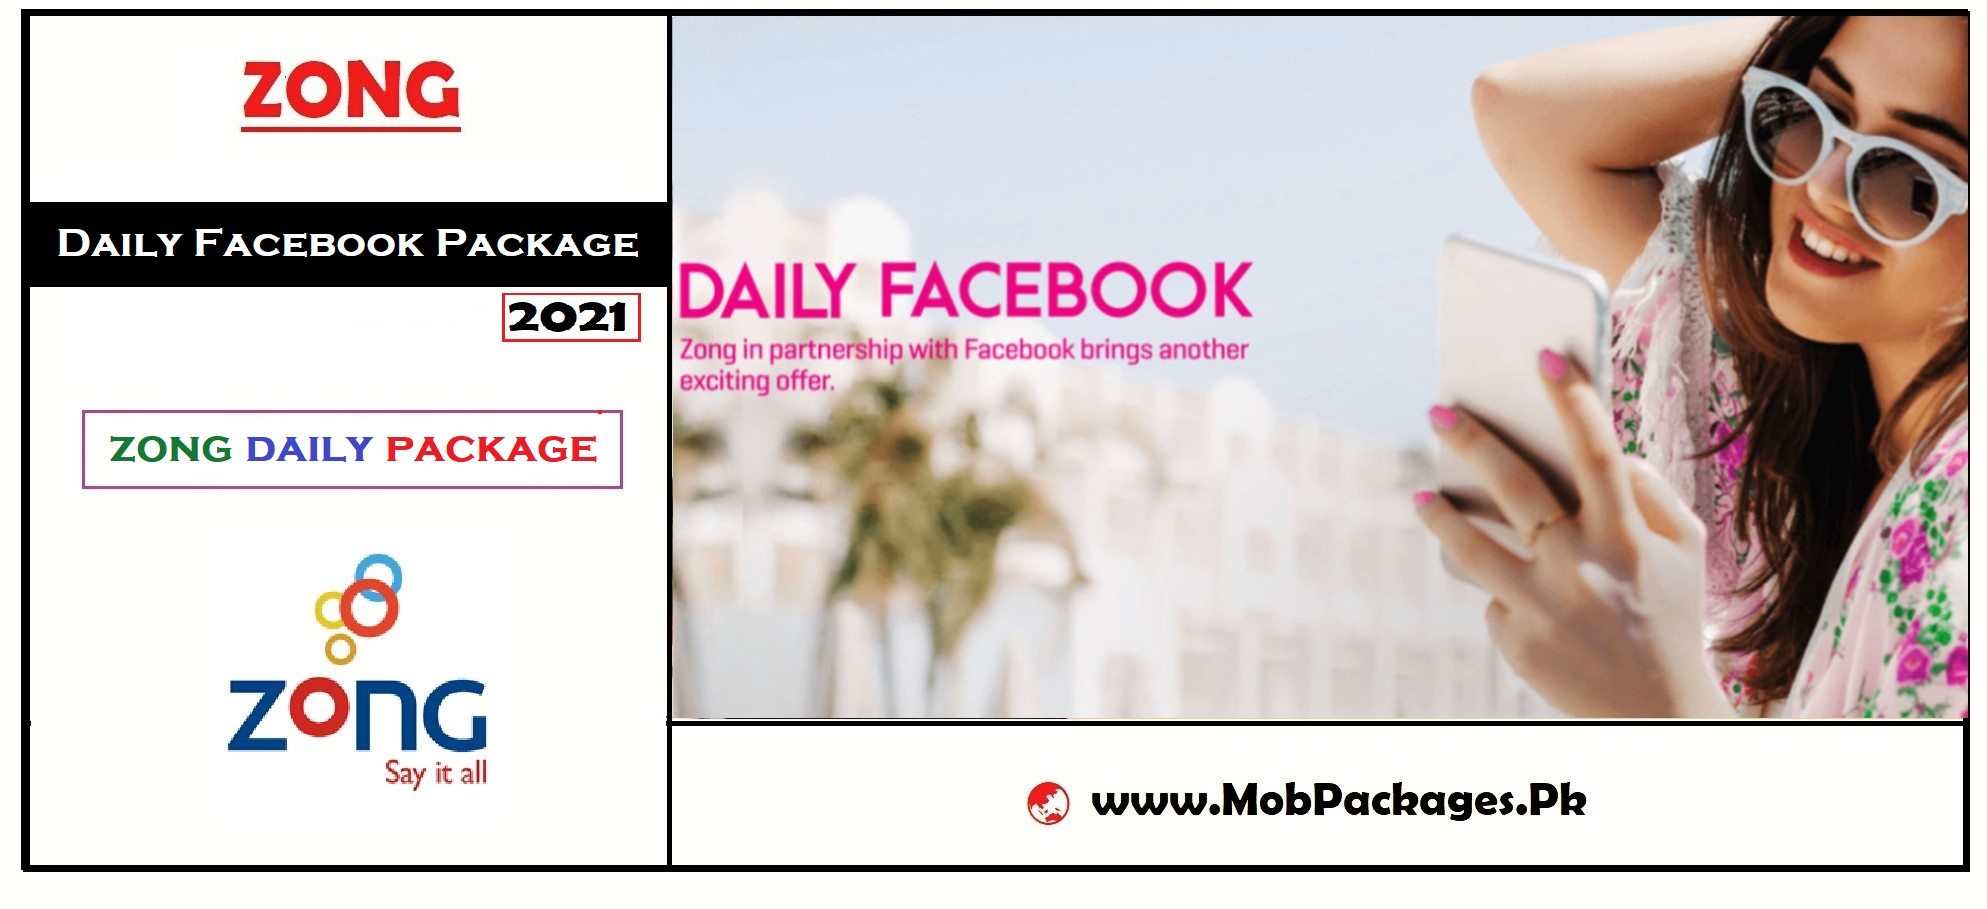 Zong Facebook Daily Package